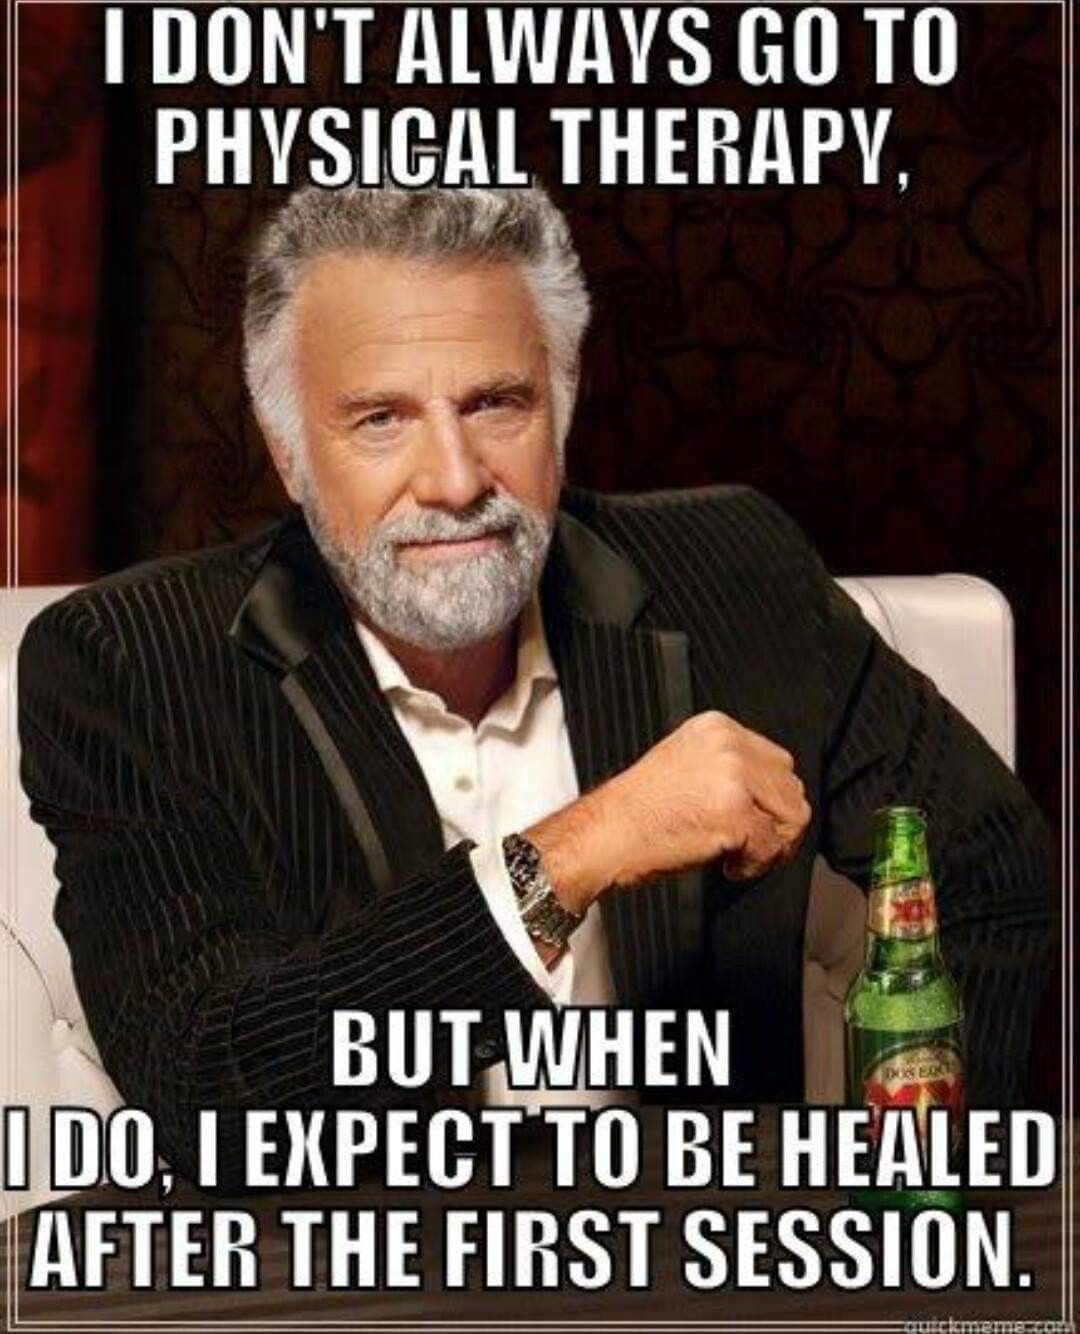 Pin by Jacob Andra on Humor | Physical therapy memes ...